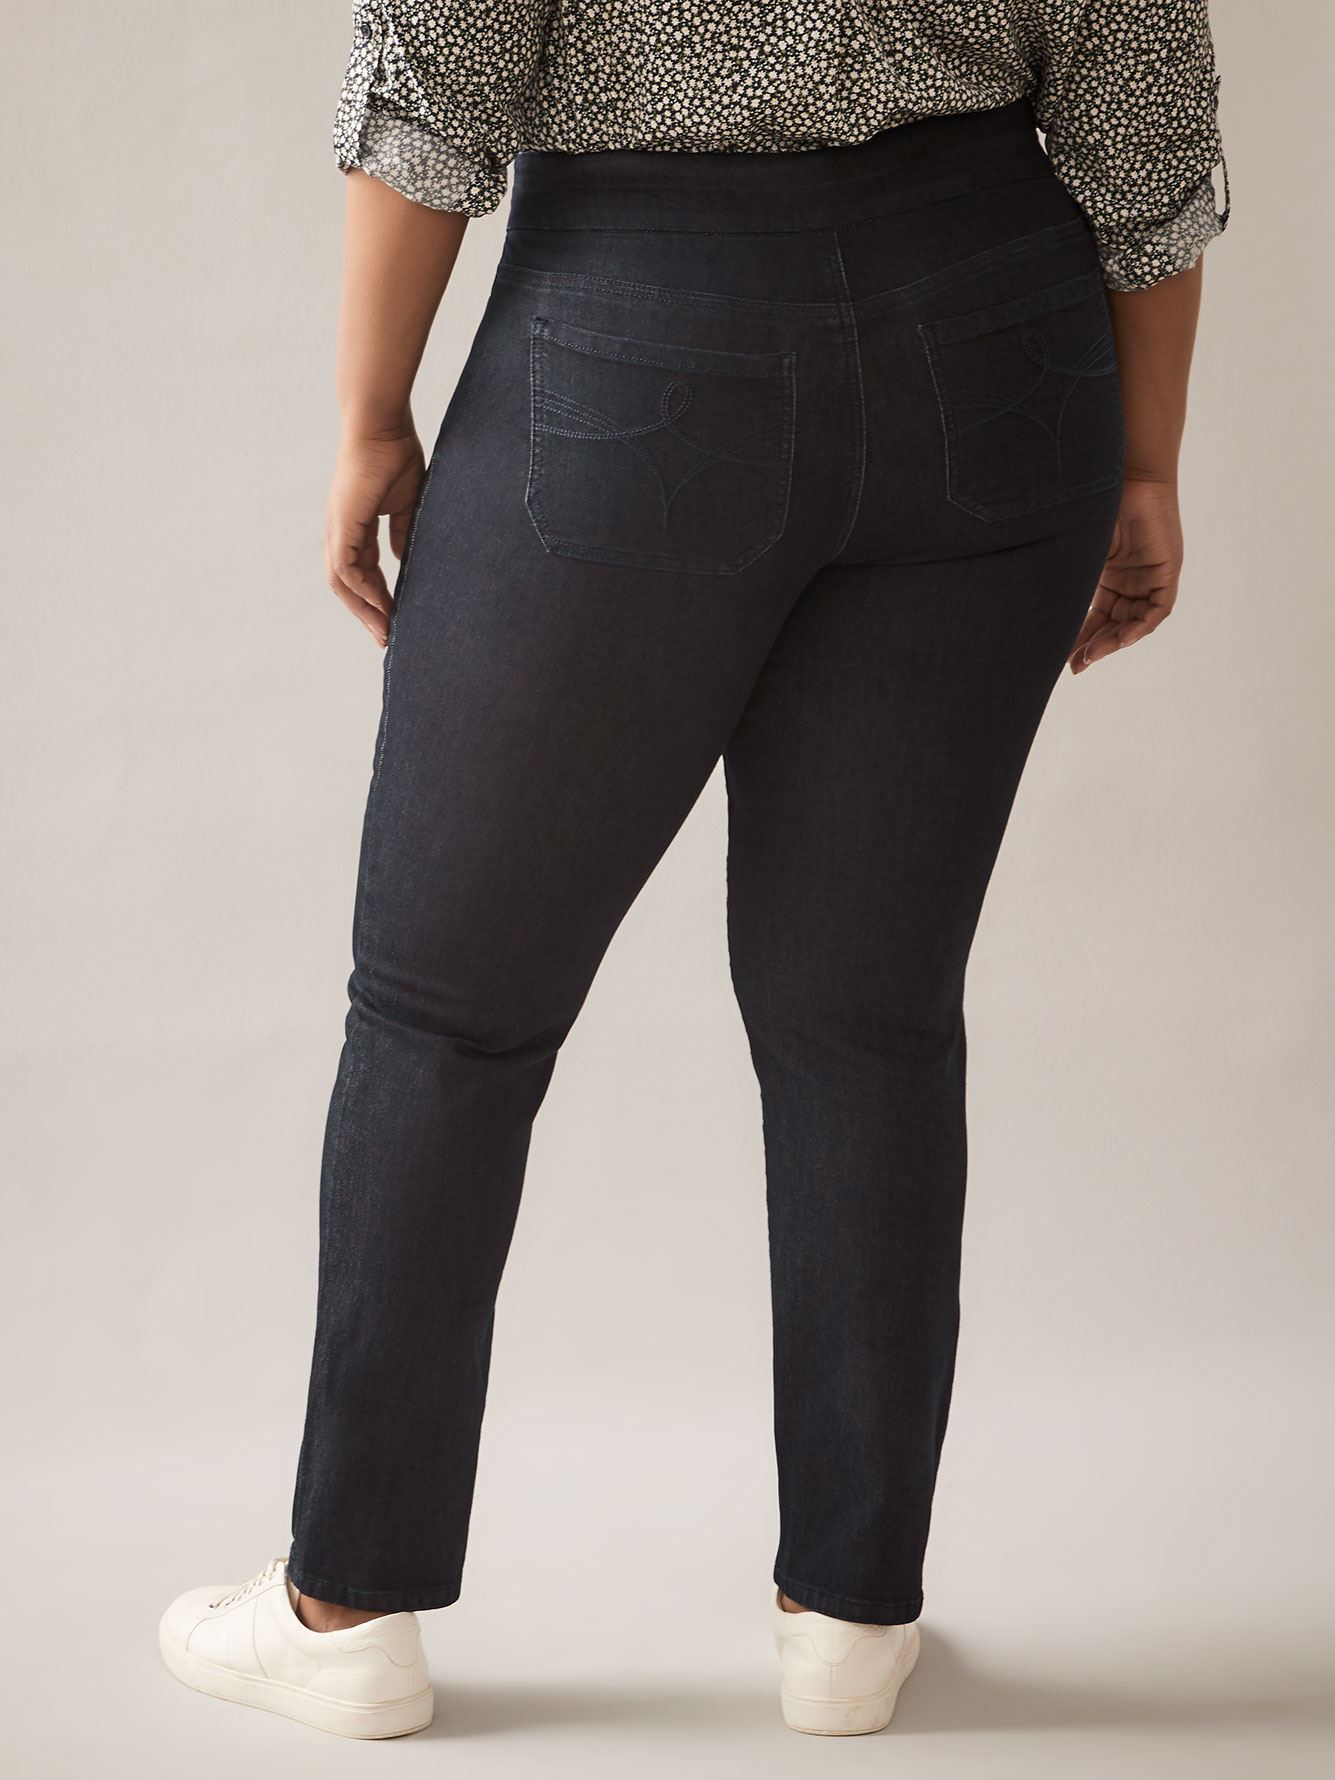 Savvy Fit, Straight-Leg Dark Jeans - In Every Story